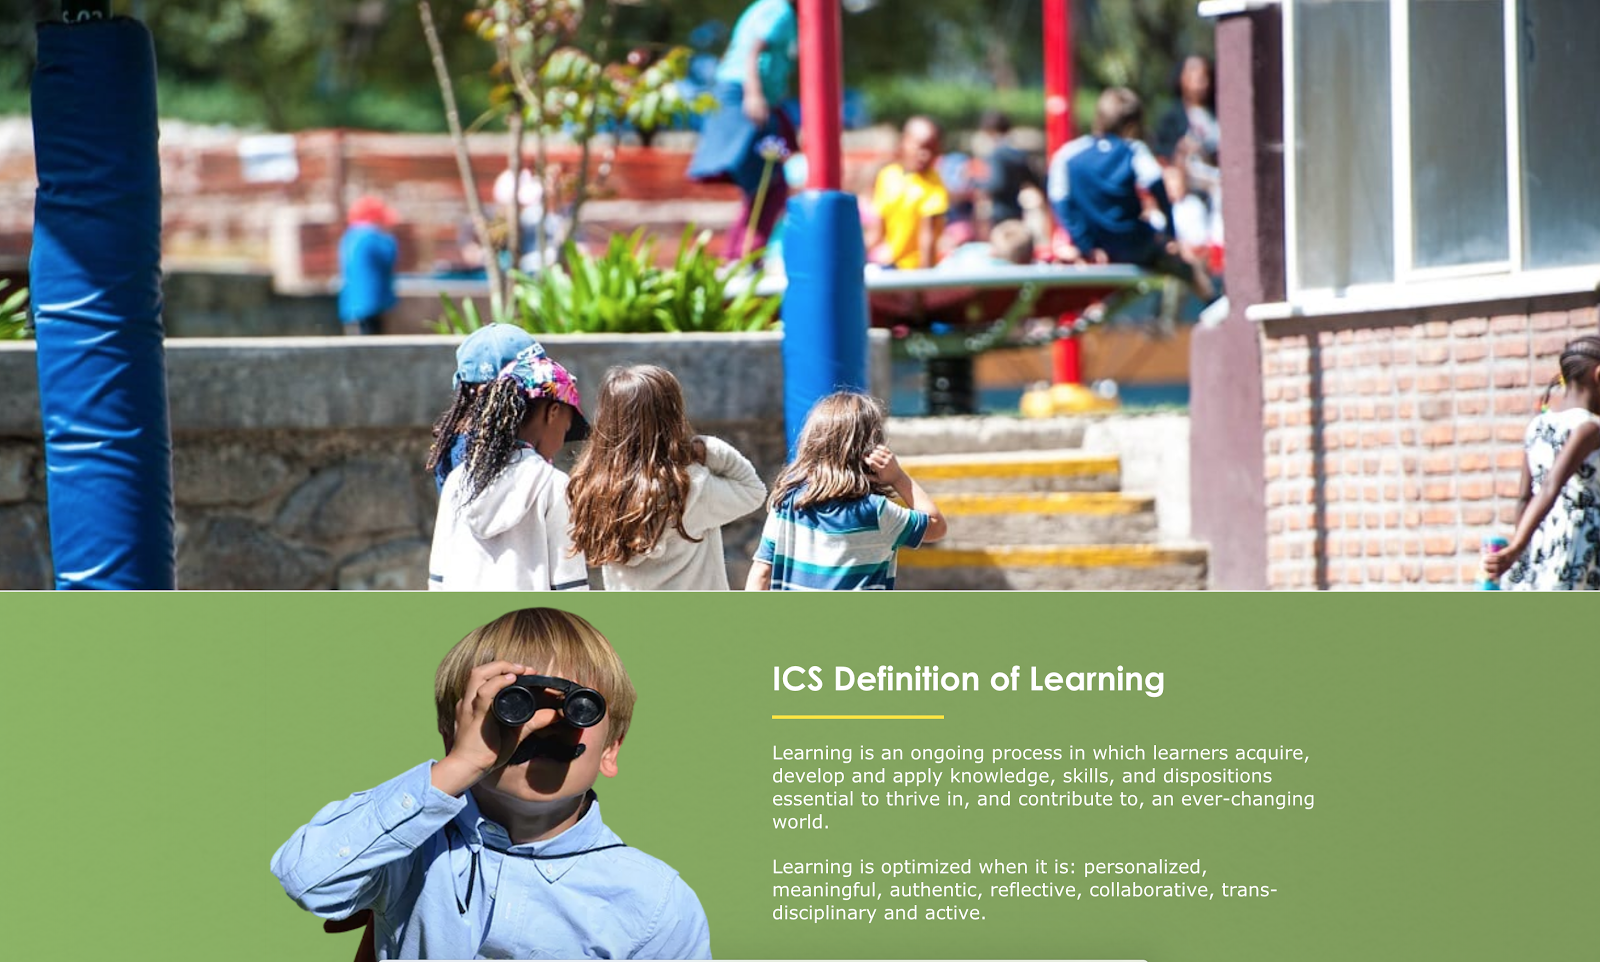 ICS Definition of Learning website page